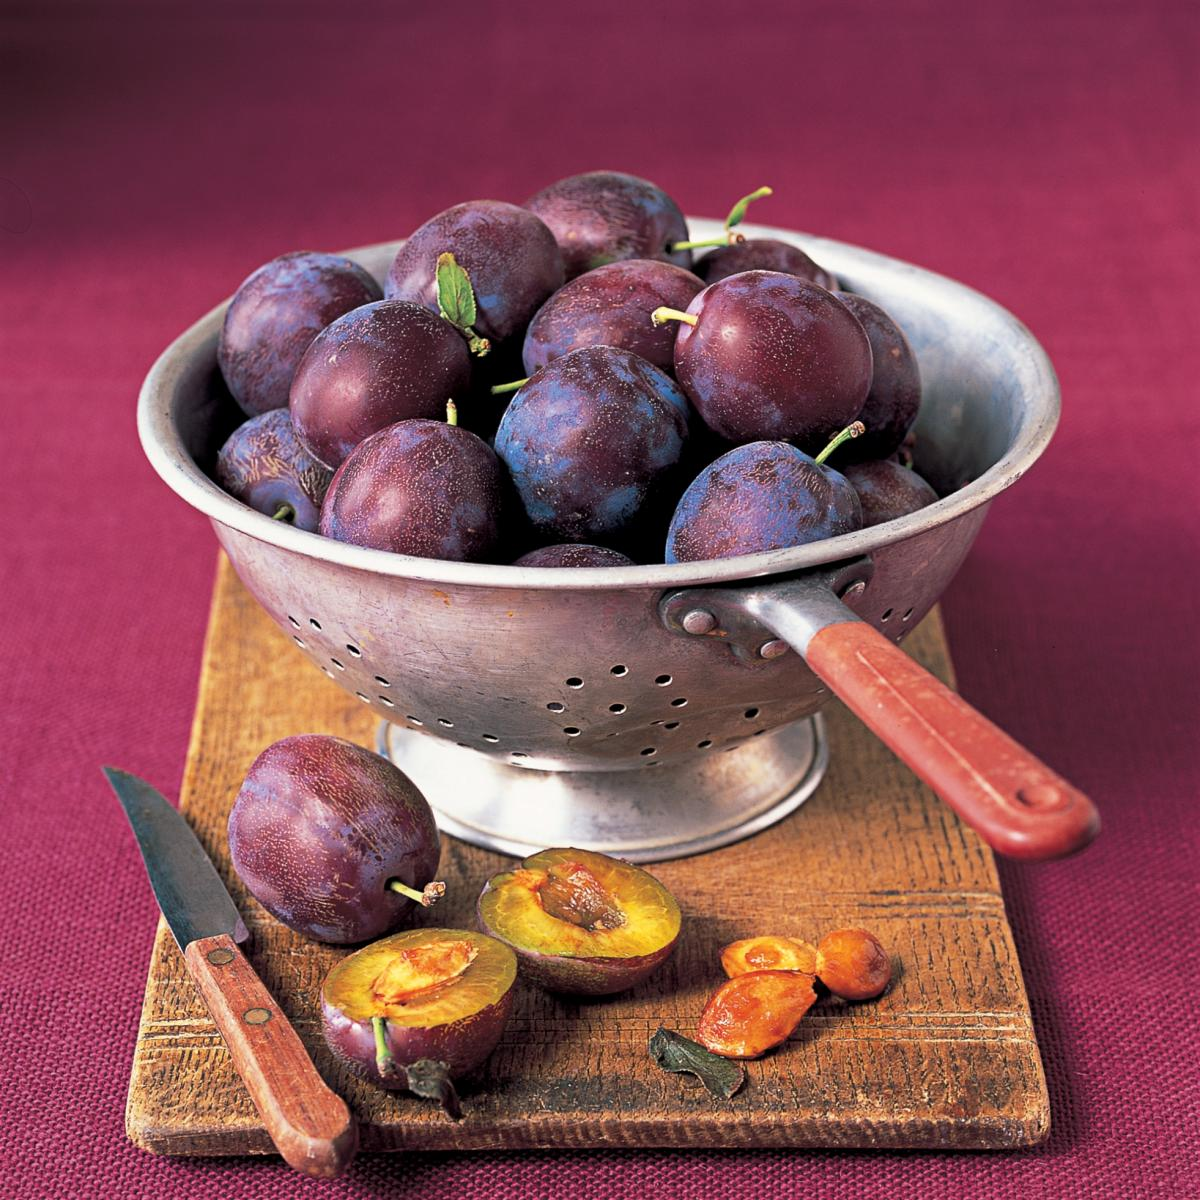 Ingredient puddings plums